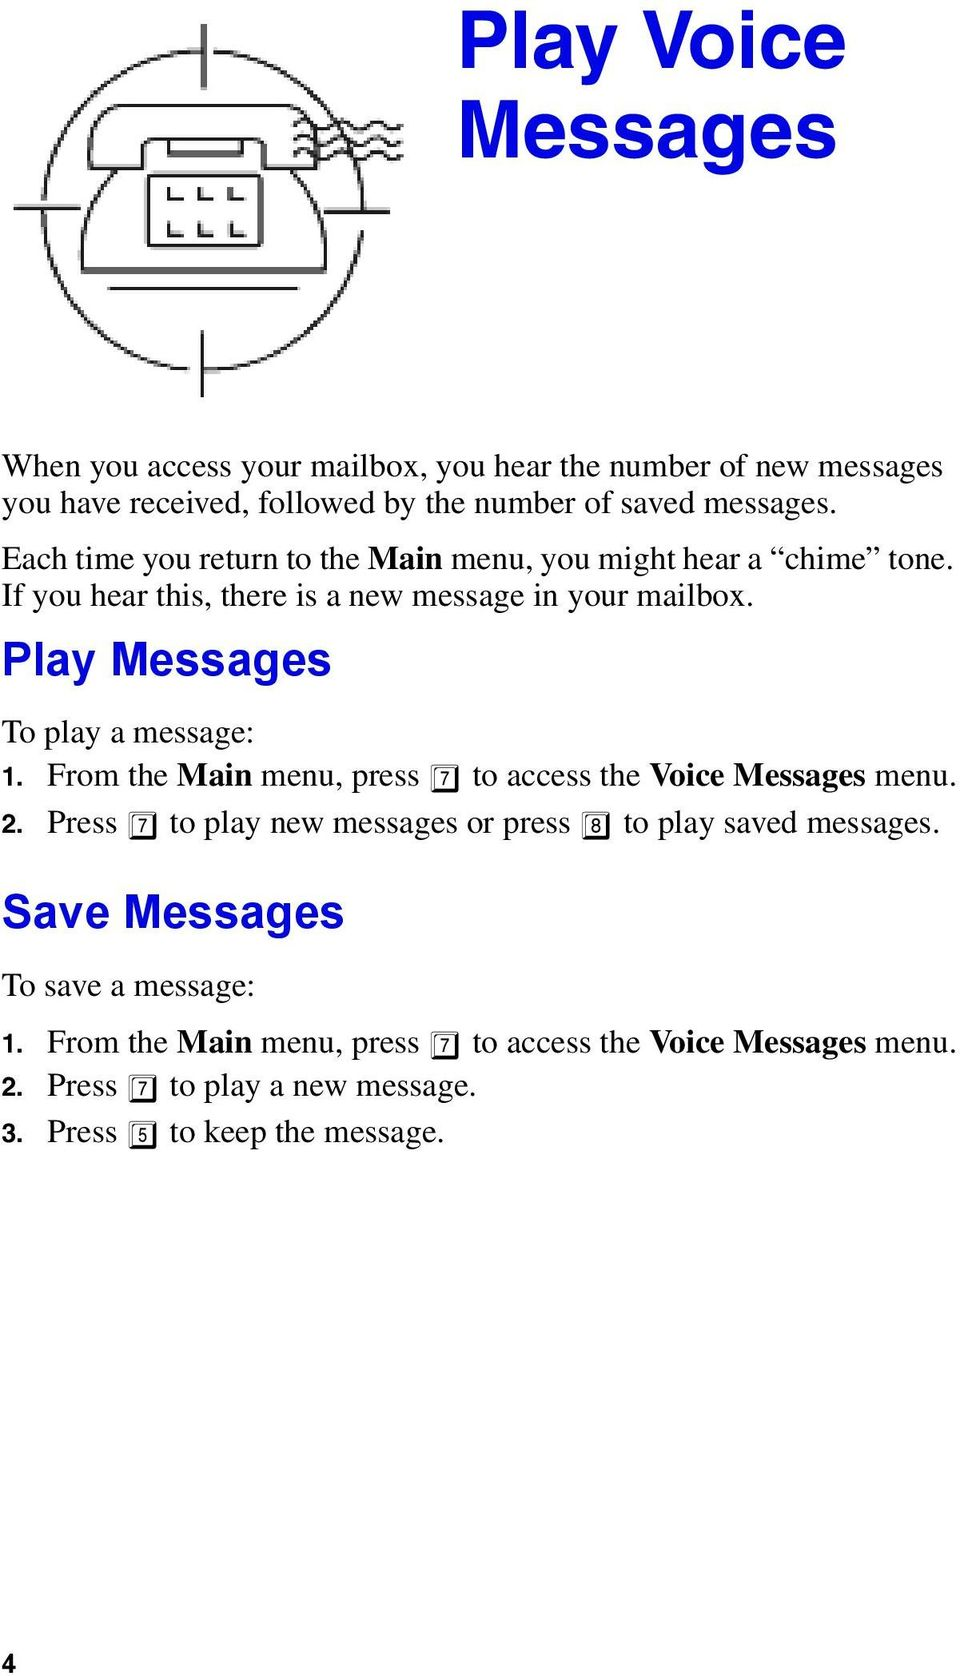 Play Messages To play a message: 1. From the Main menu, press 7 to access the Voice Messages menu. 2.